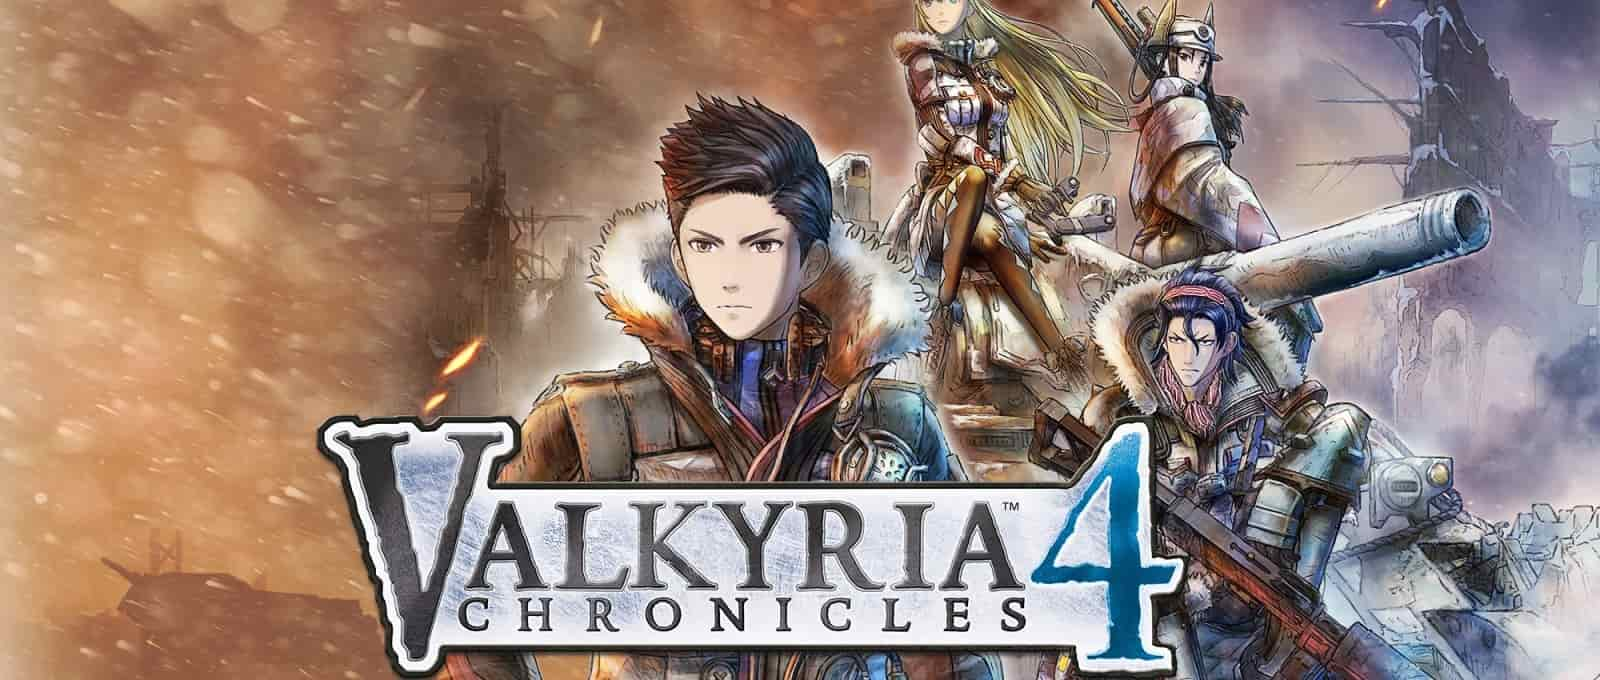 valkyria chronicles 4 opening screen